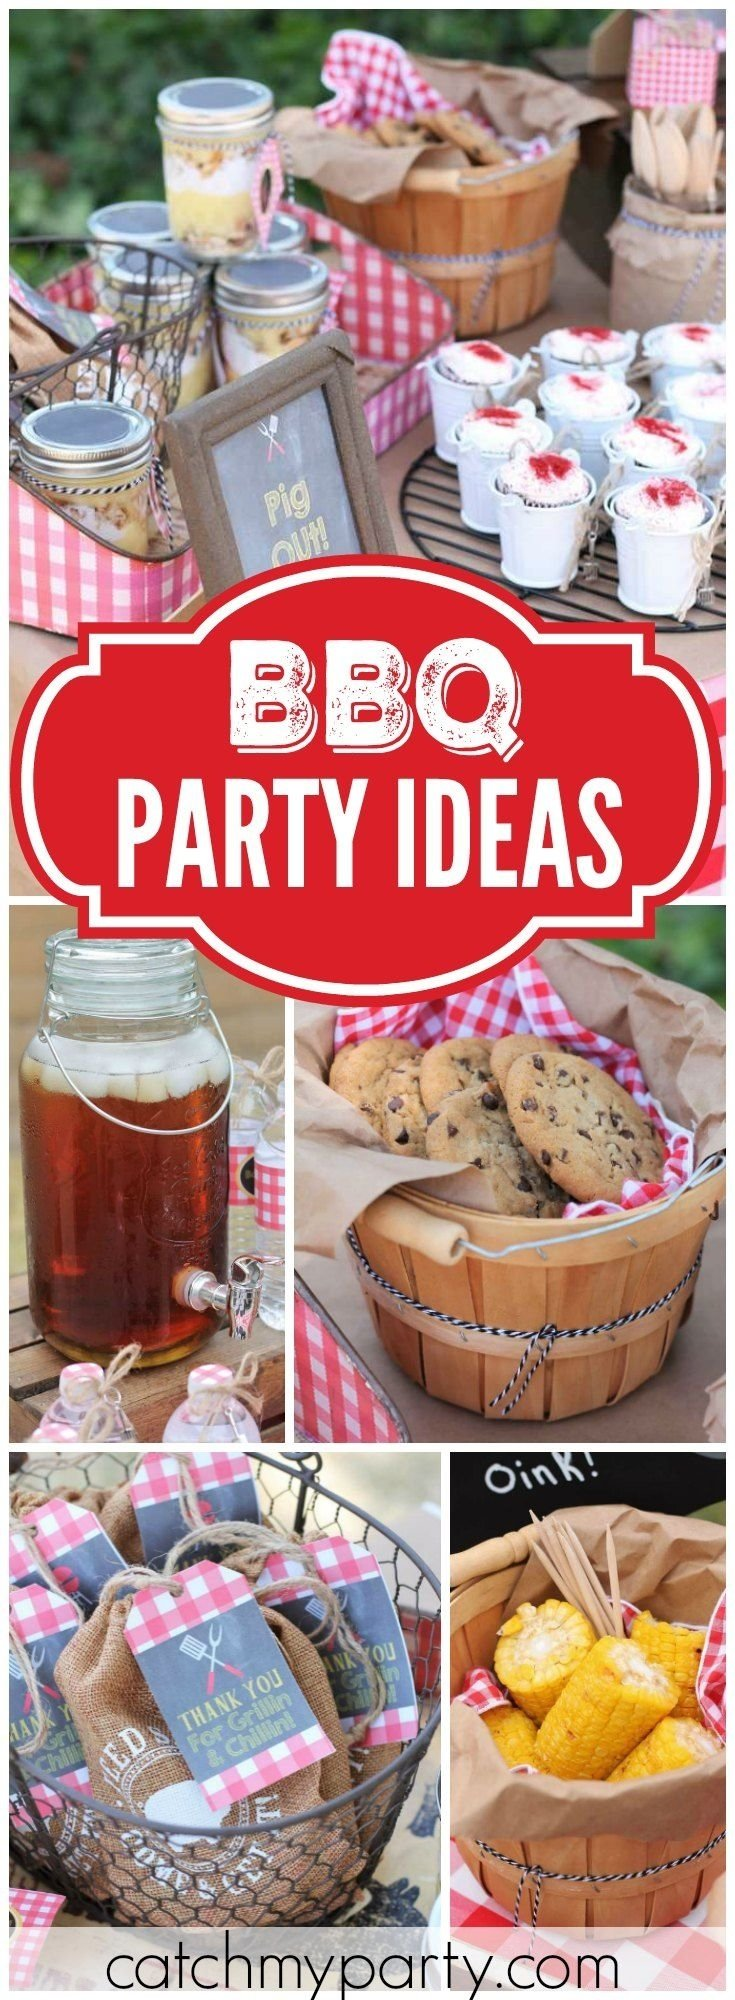 10 Pretty Bbq Party Ideas For Adults backyard bbq summer chillin grillin backyard summer and